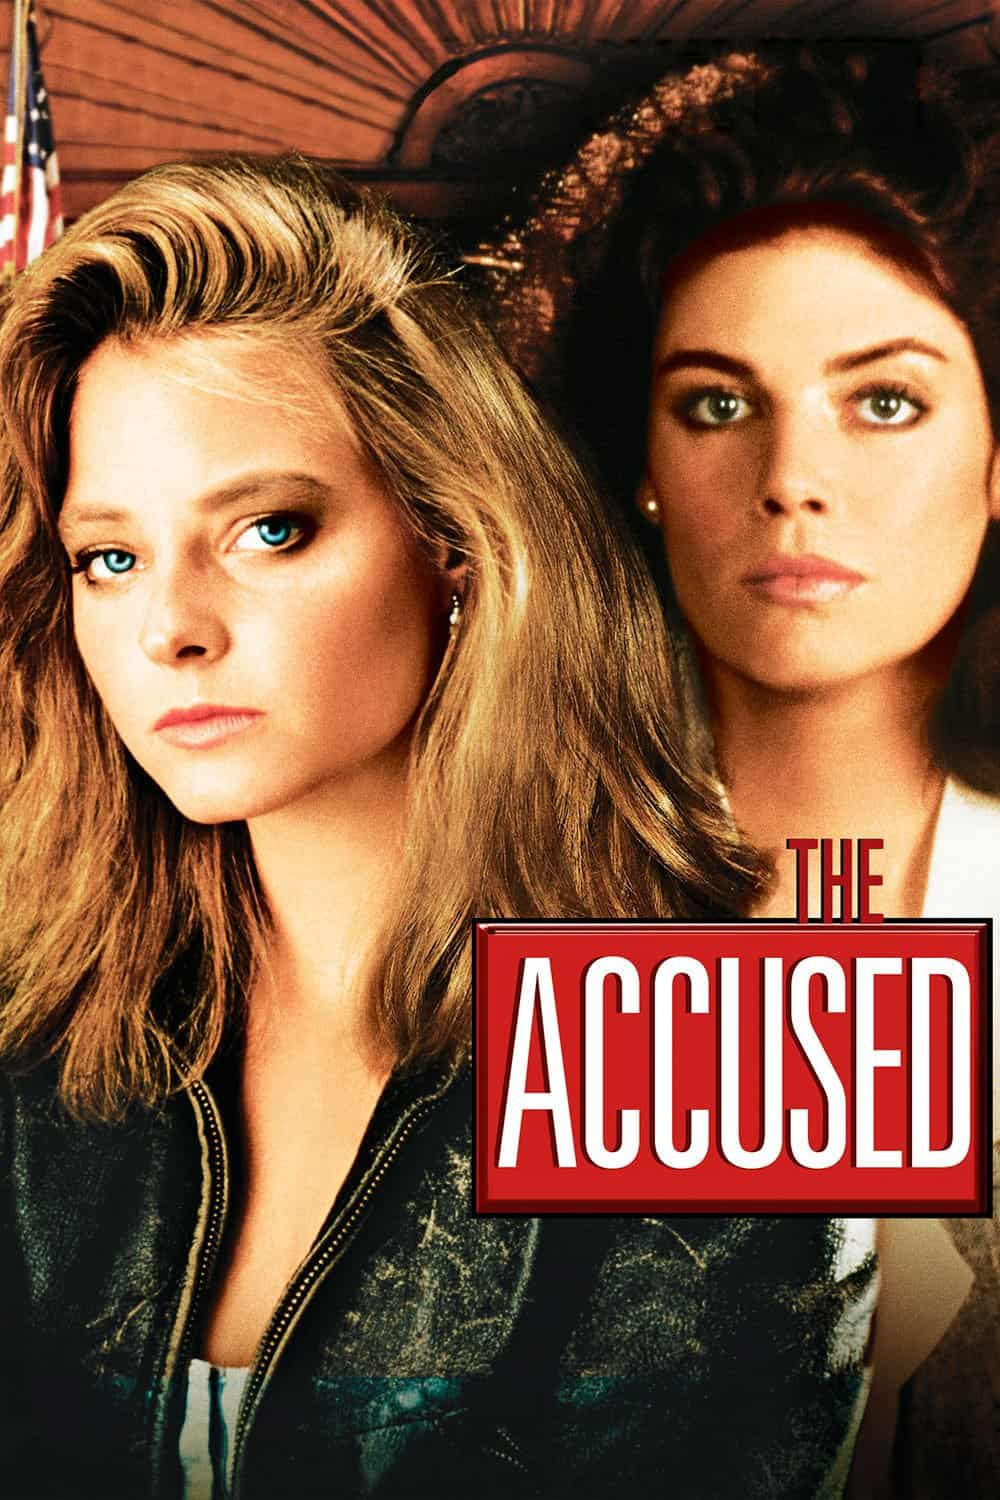 The Accused, 1988